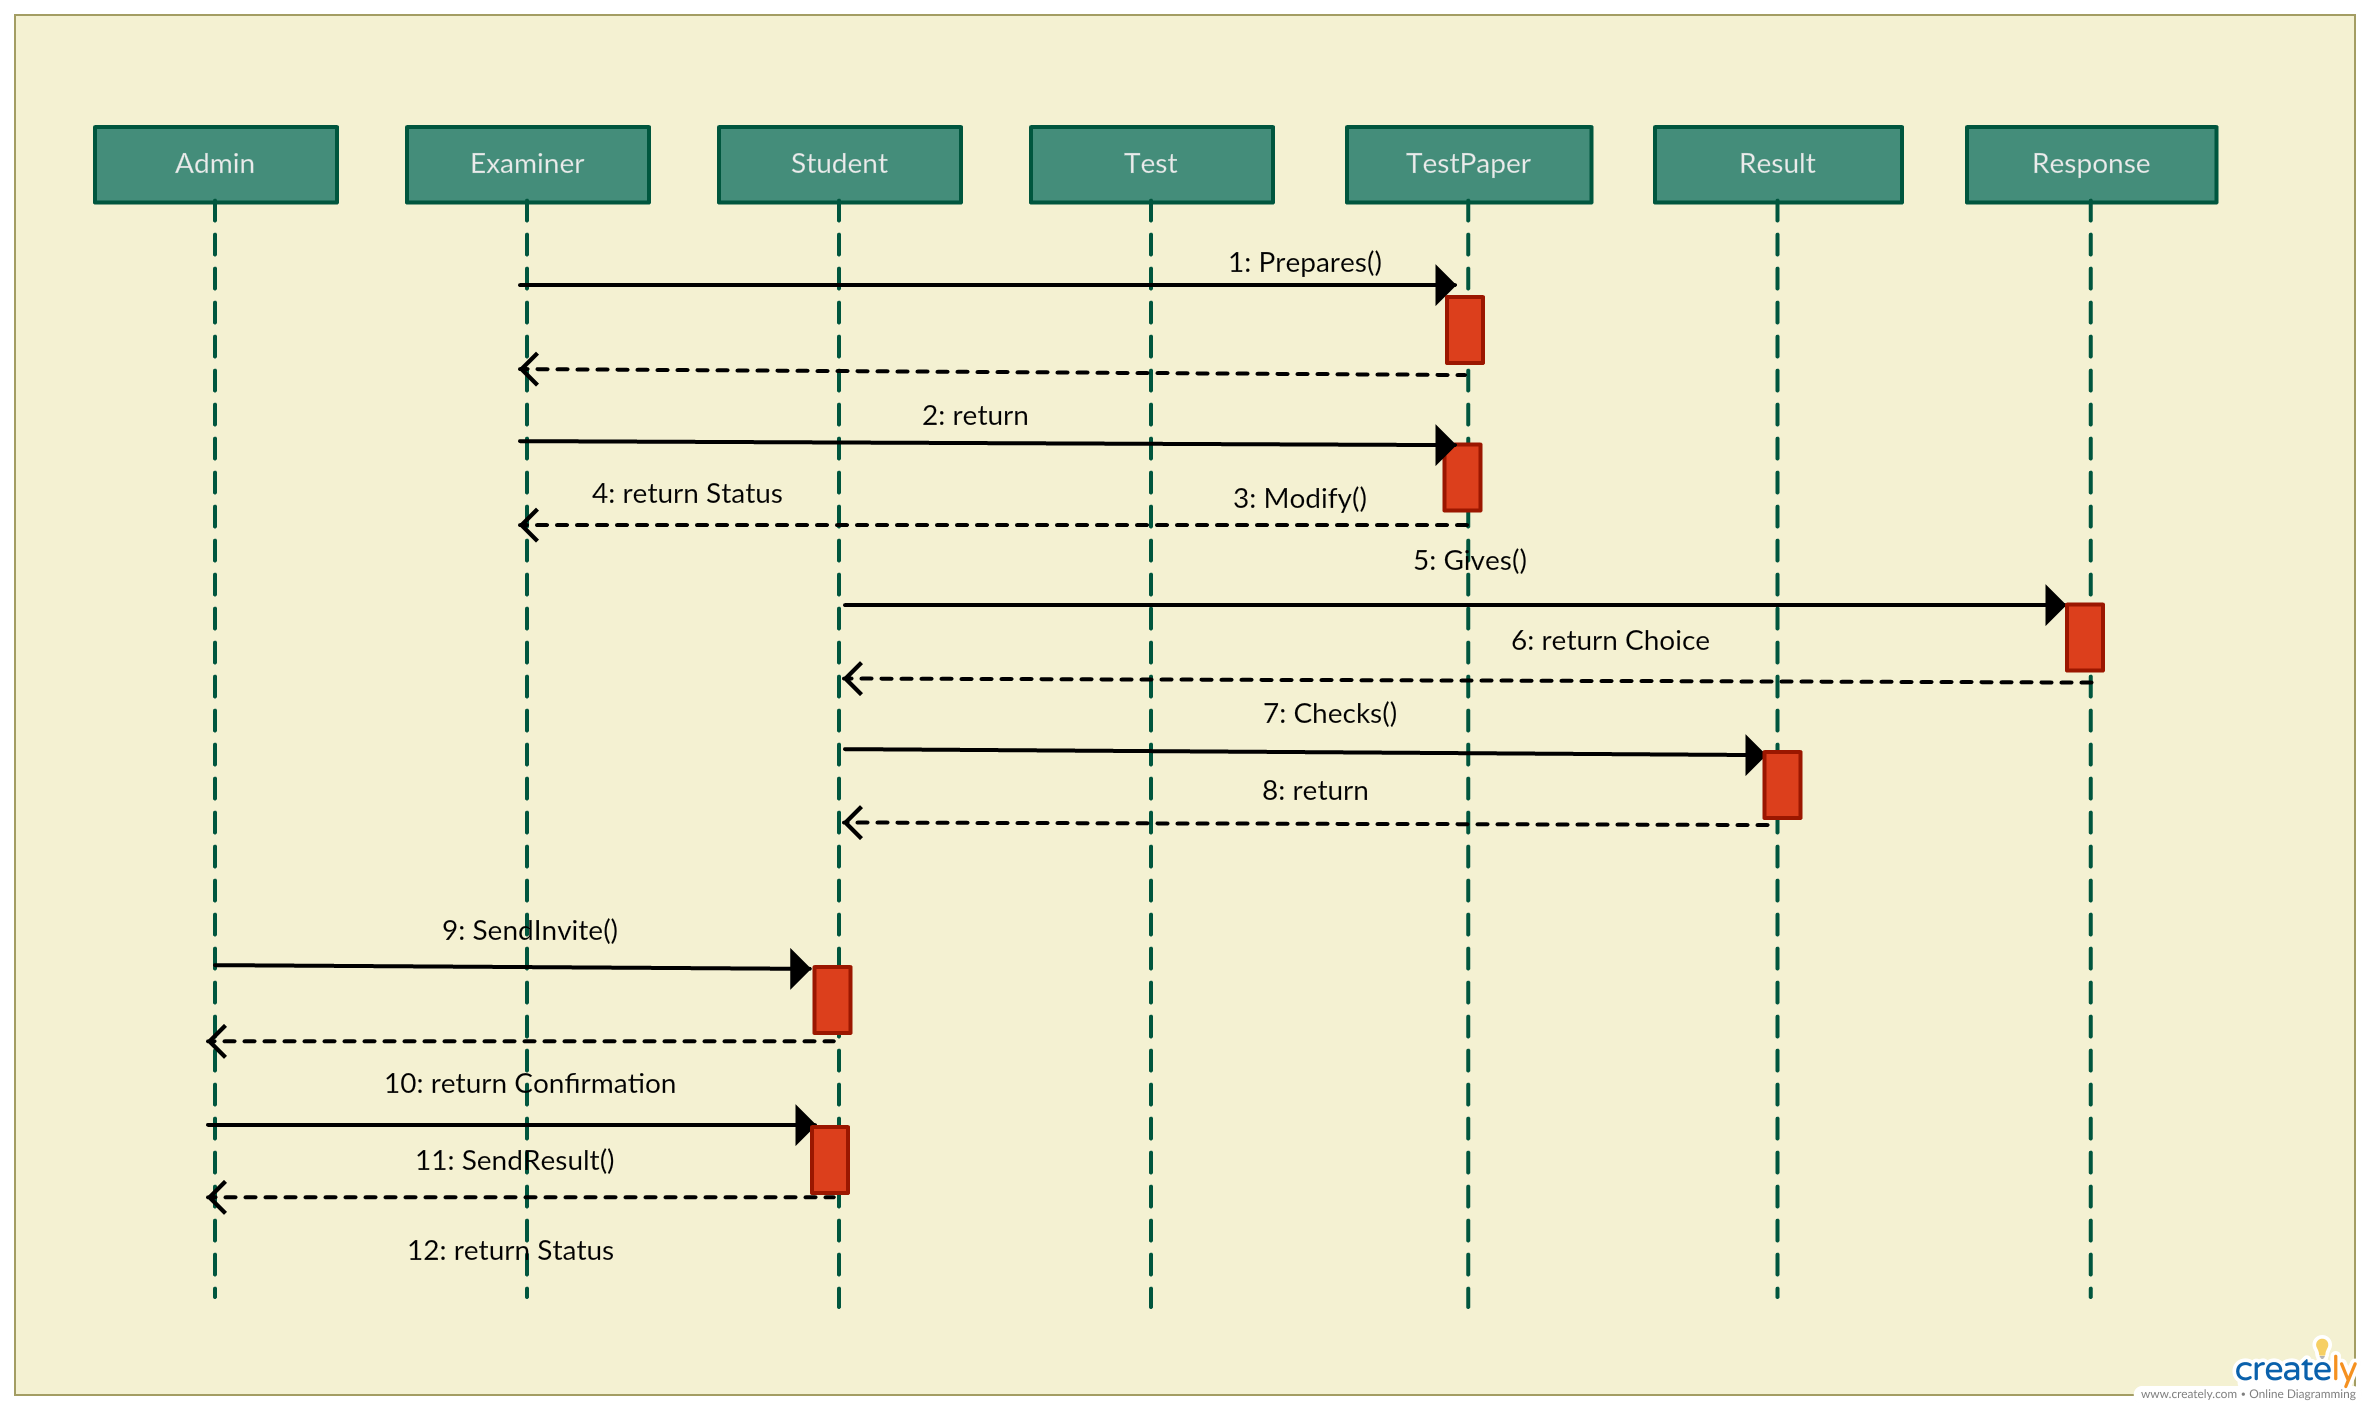 hight resolution of online examination sequence diagram template click the image to get all the important aspects